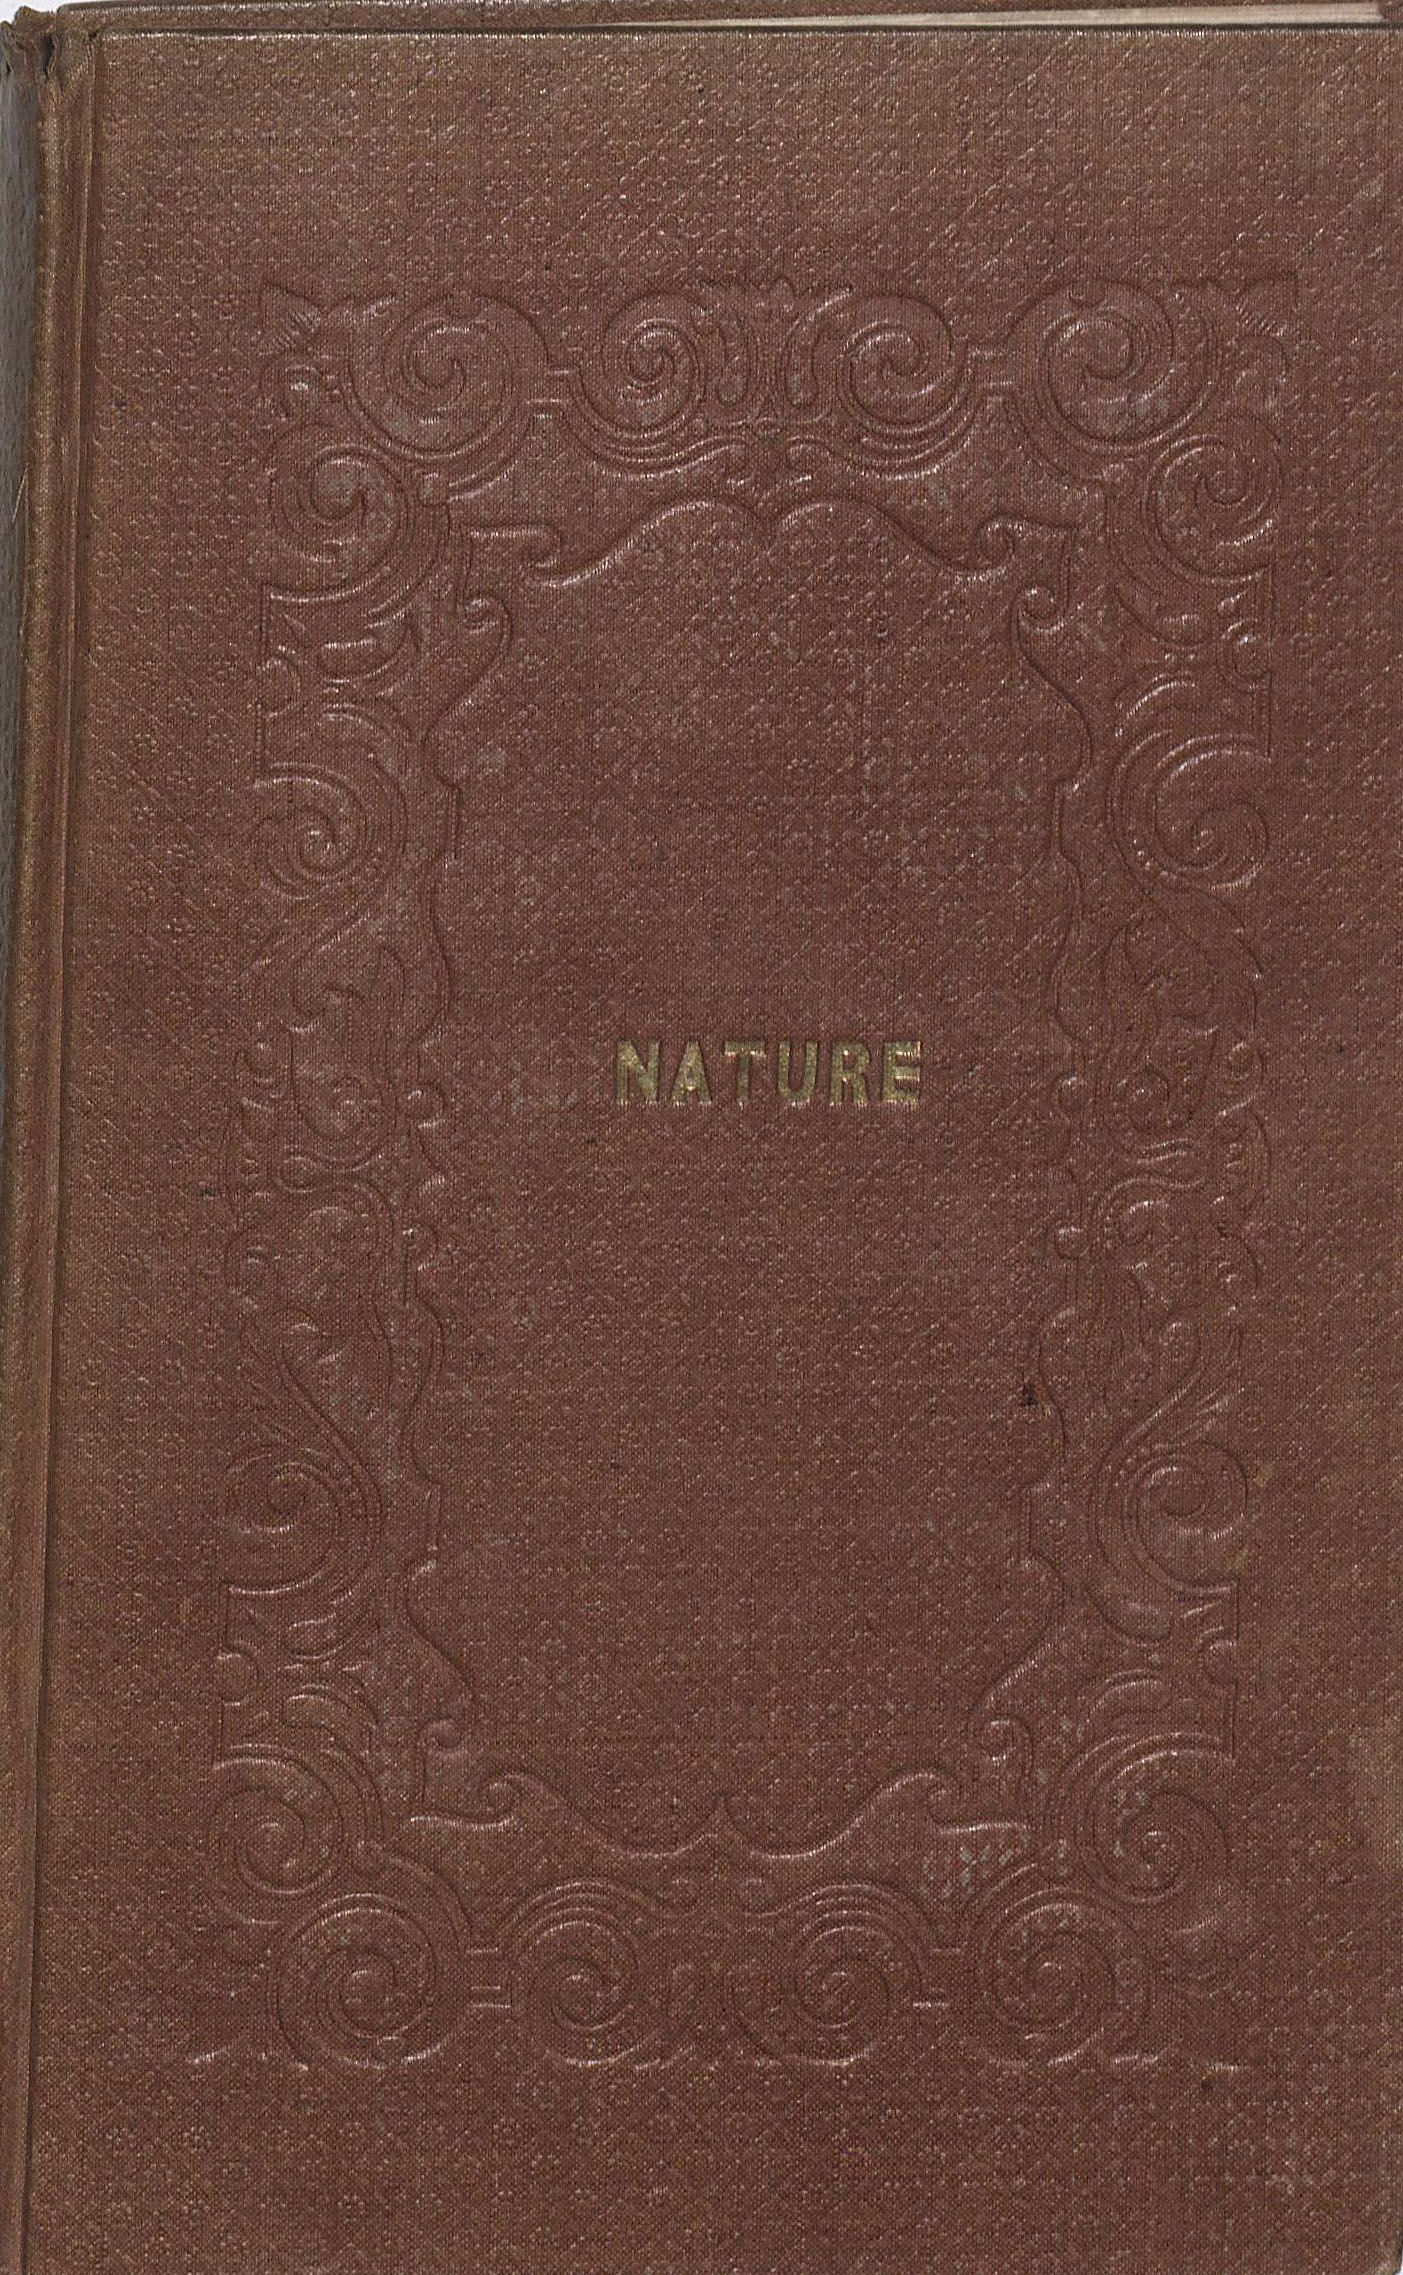 Emerson's book Nature, 1836. (PS1613 .A1 1836. Clifton Waller Barrett Library of American Literature. Image by Petrina Jackson)